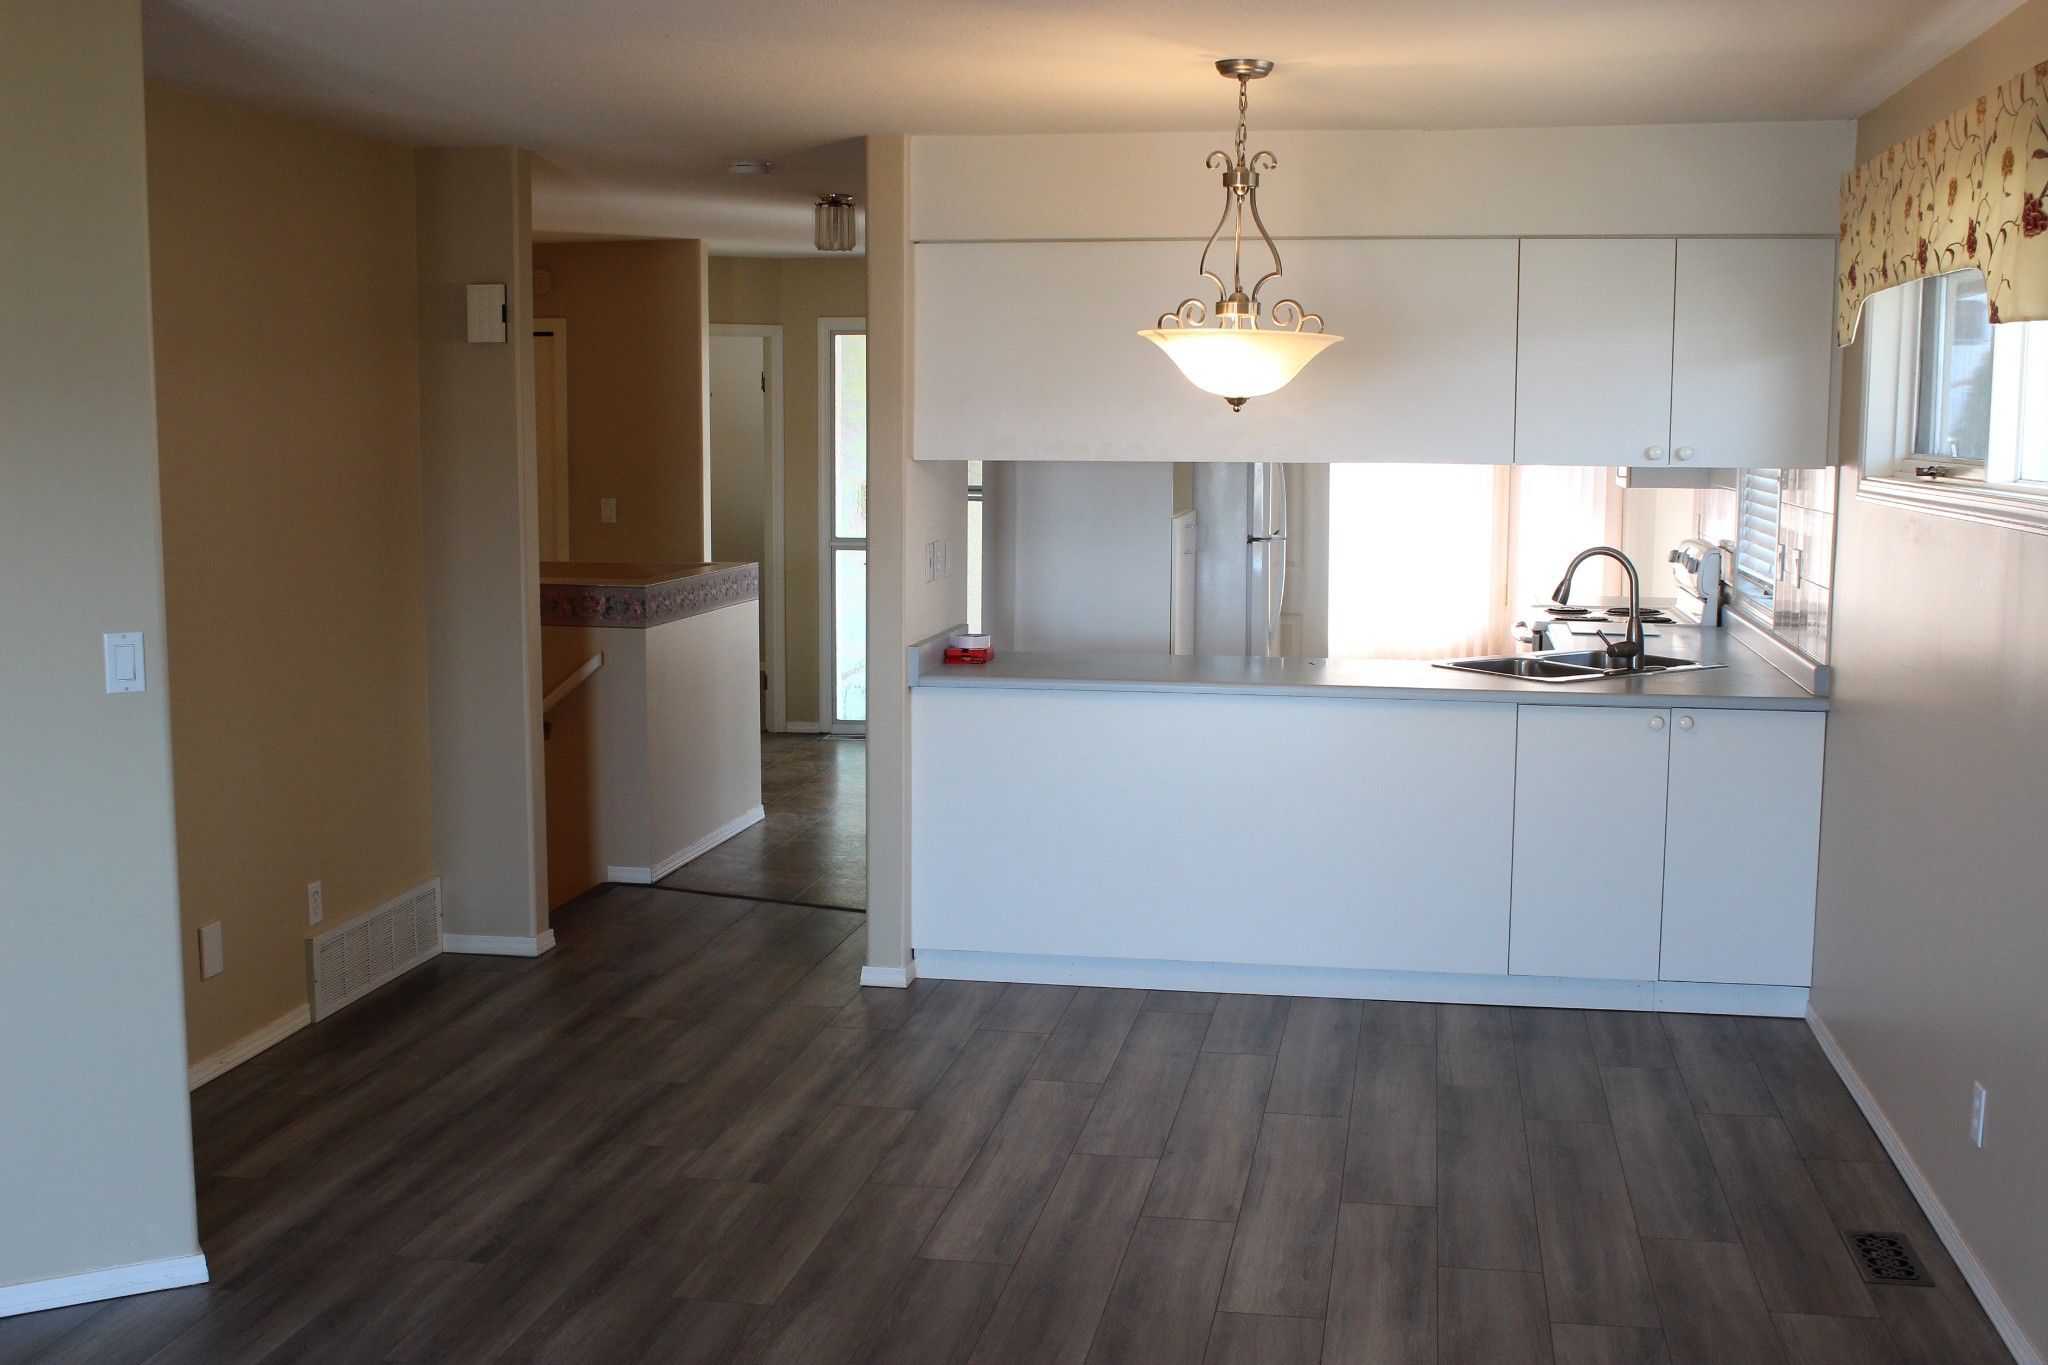 Photo 3: Photos: 4 1580 Springhill Drive in Kamloops: Sahali Townhouse for sale : MLS®# 156043